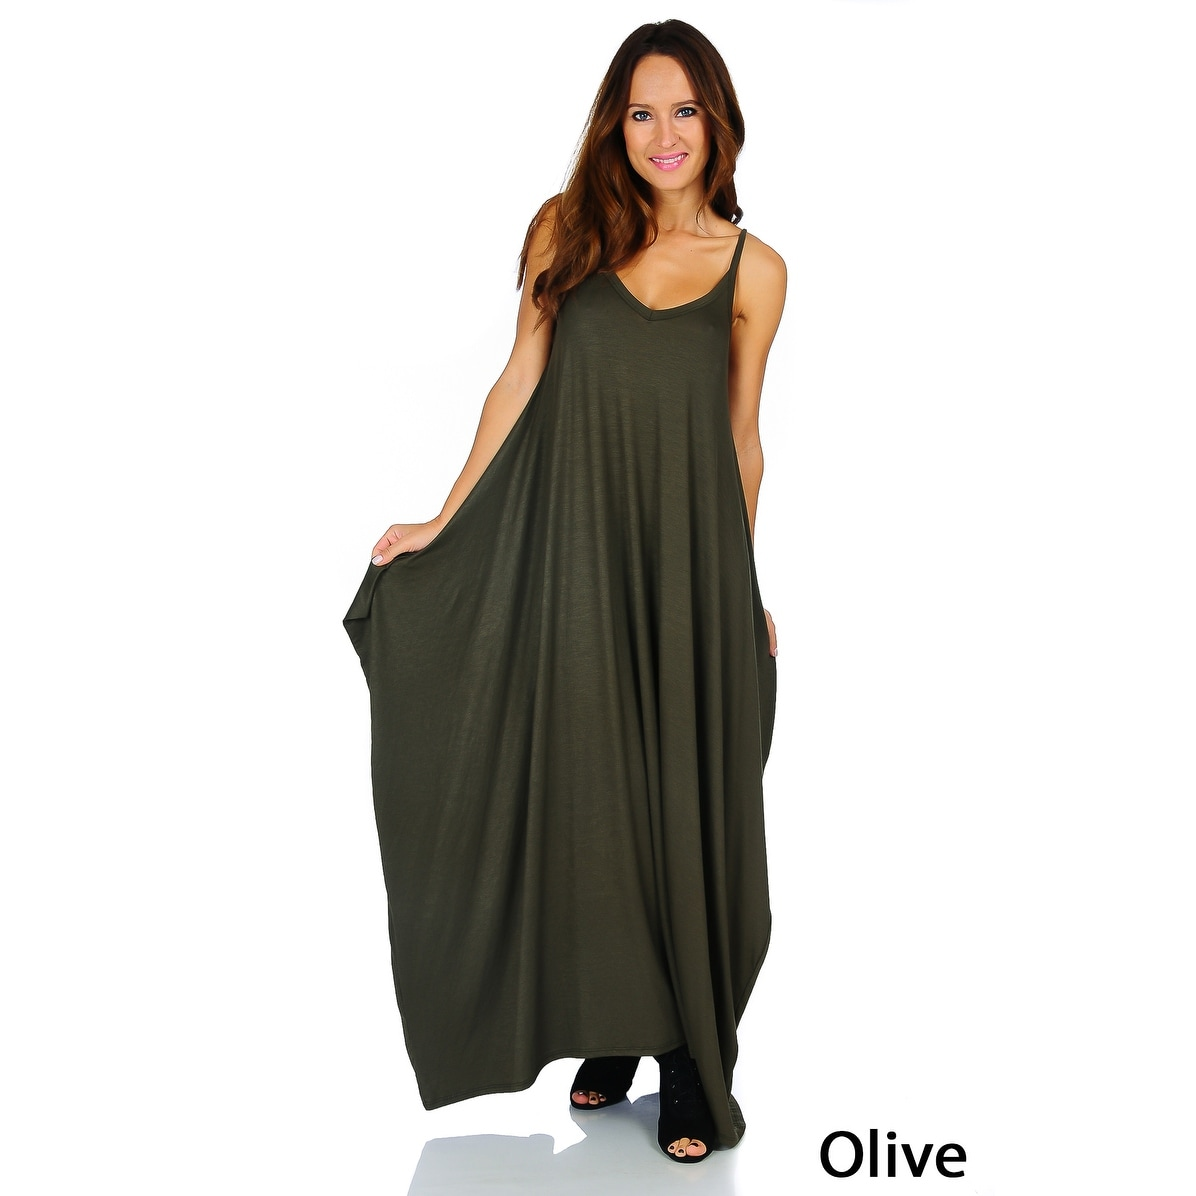 Simply Ravishing Women's Maxi Boho Harem Spaghetti Strap Dress (Size: Small - 3X) - Thumbnail 18